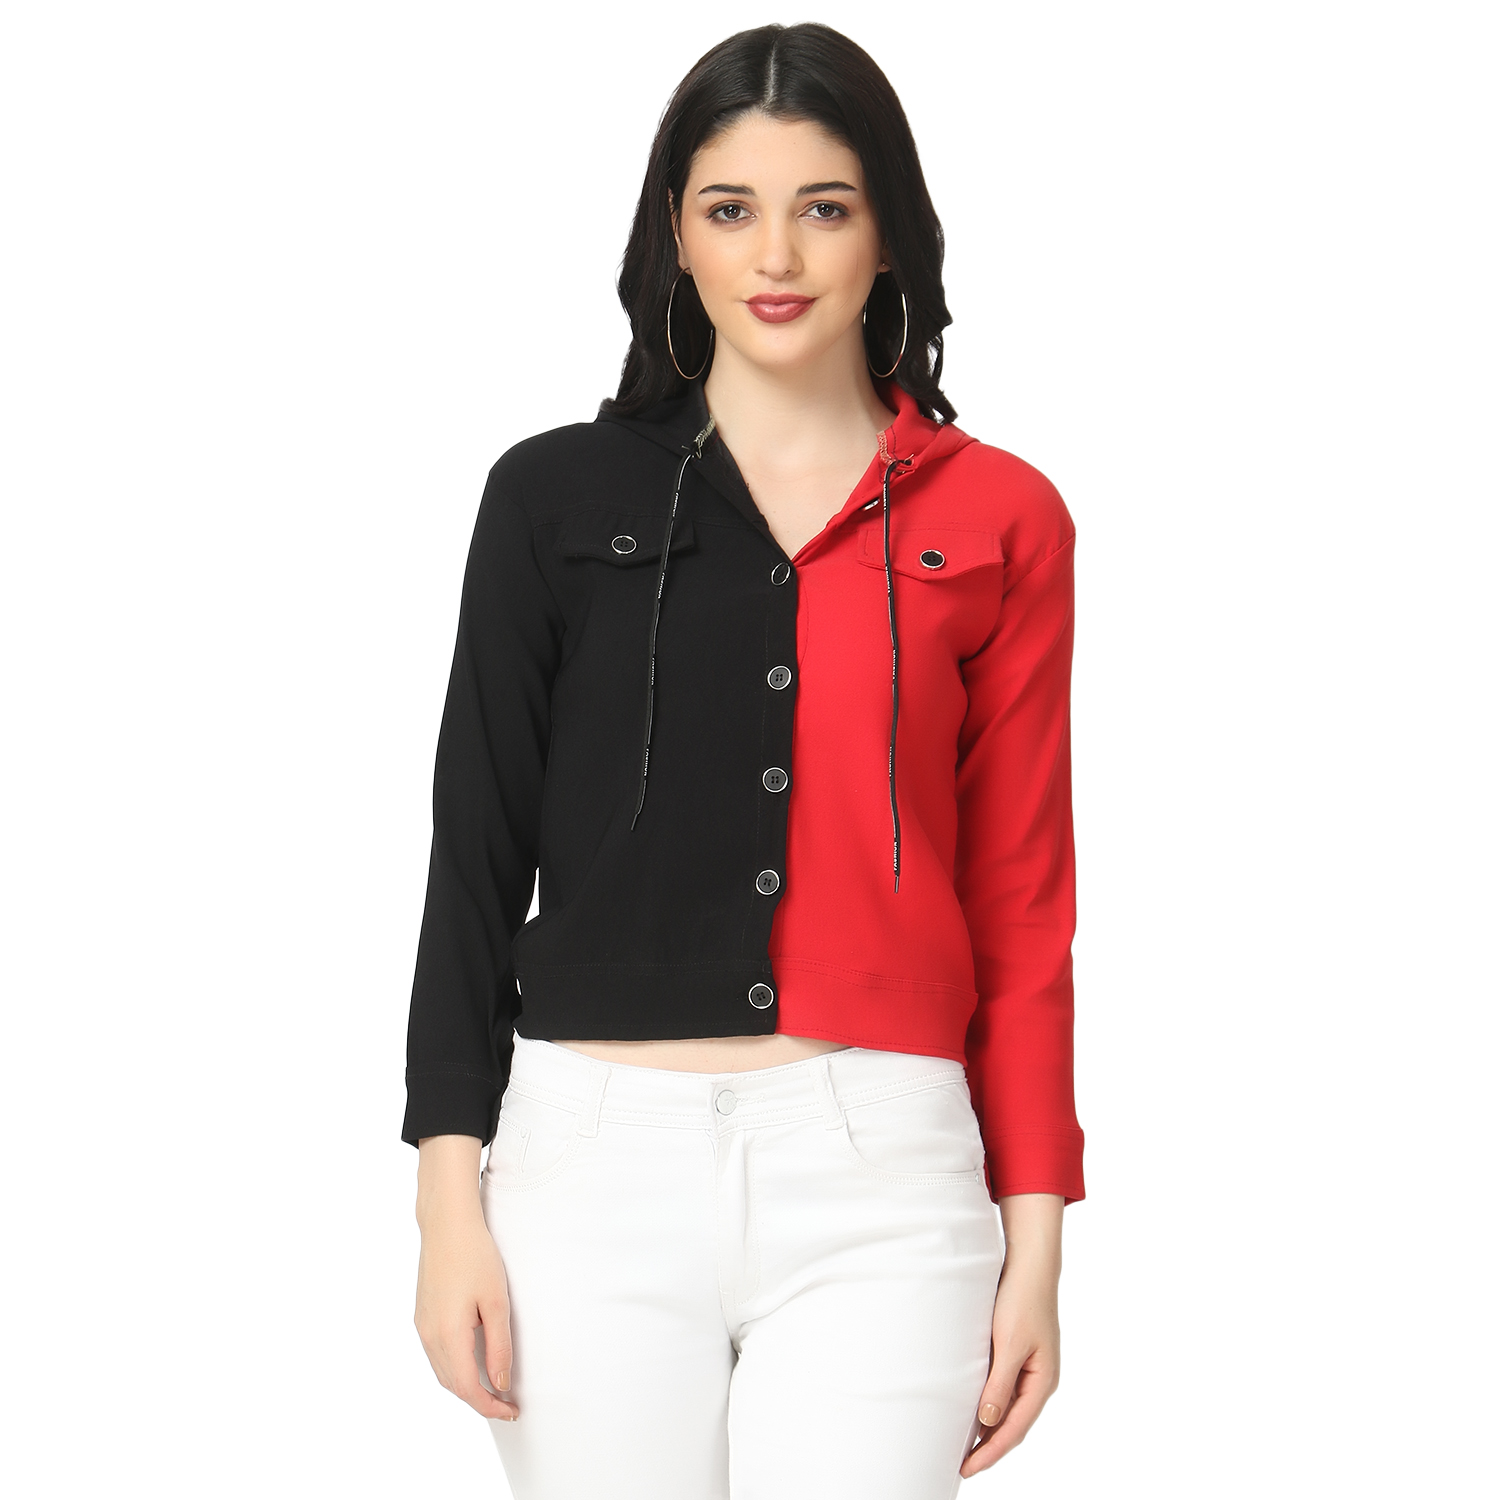 BuyNewTrend Cotton Lycra Black and Red Buttoned Jacket with Hoodie For Women